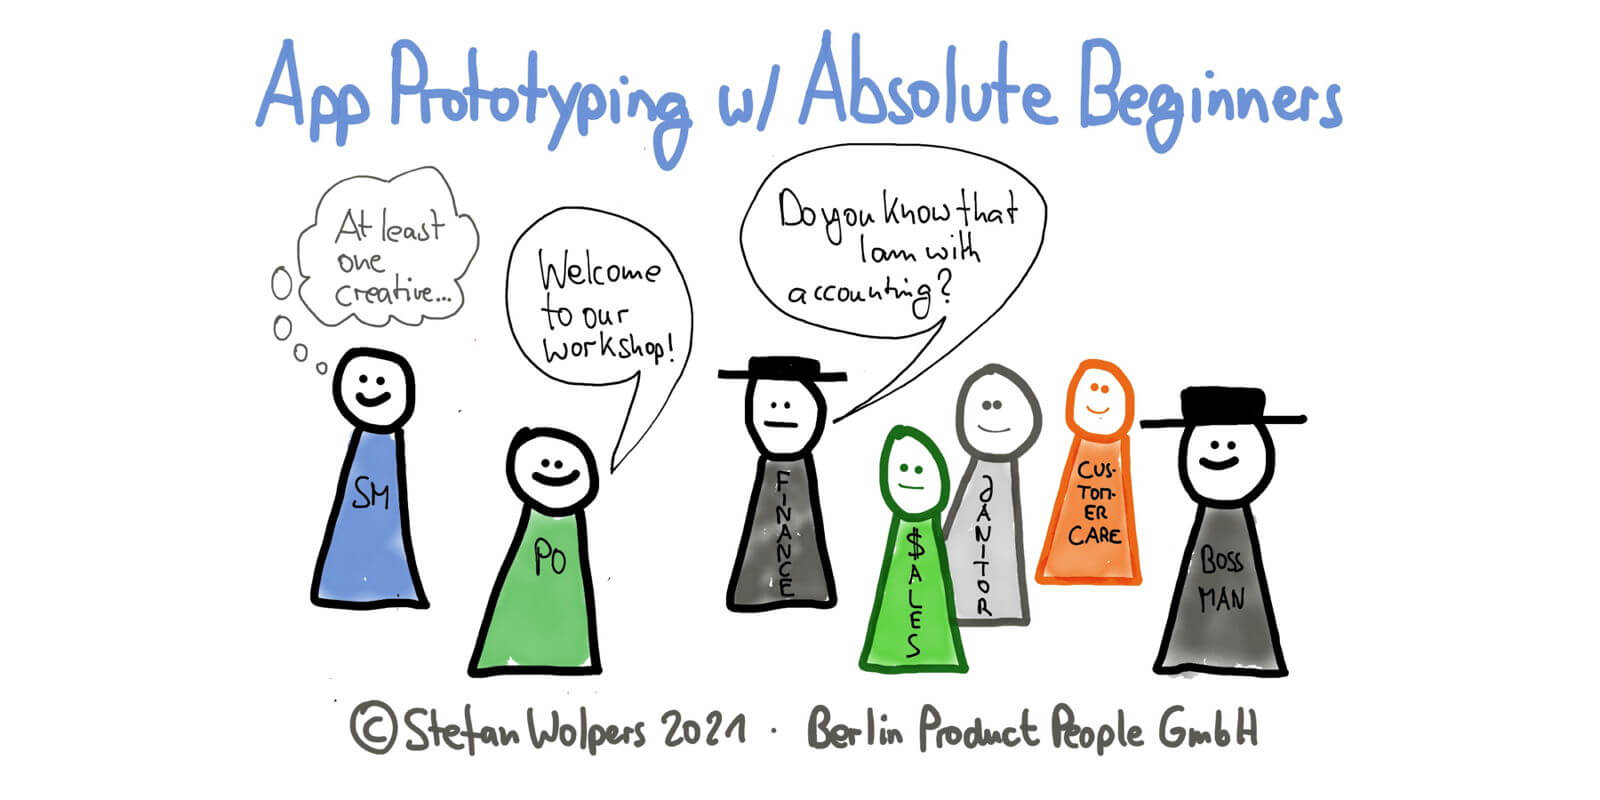 App Prototyping with Absolute Beginners – Creating a Shared Understanding of How Empiricism Works — Age-of-Product.com